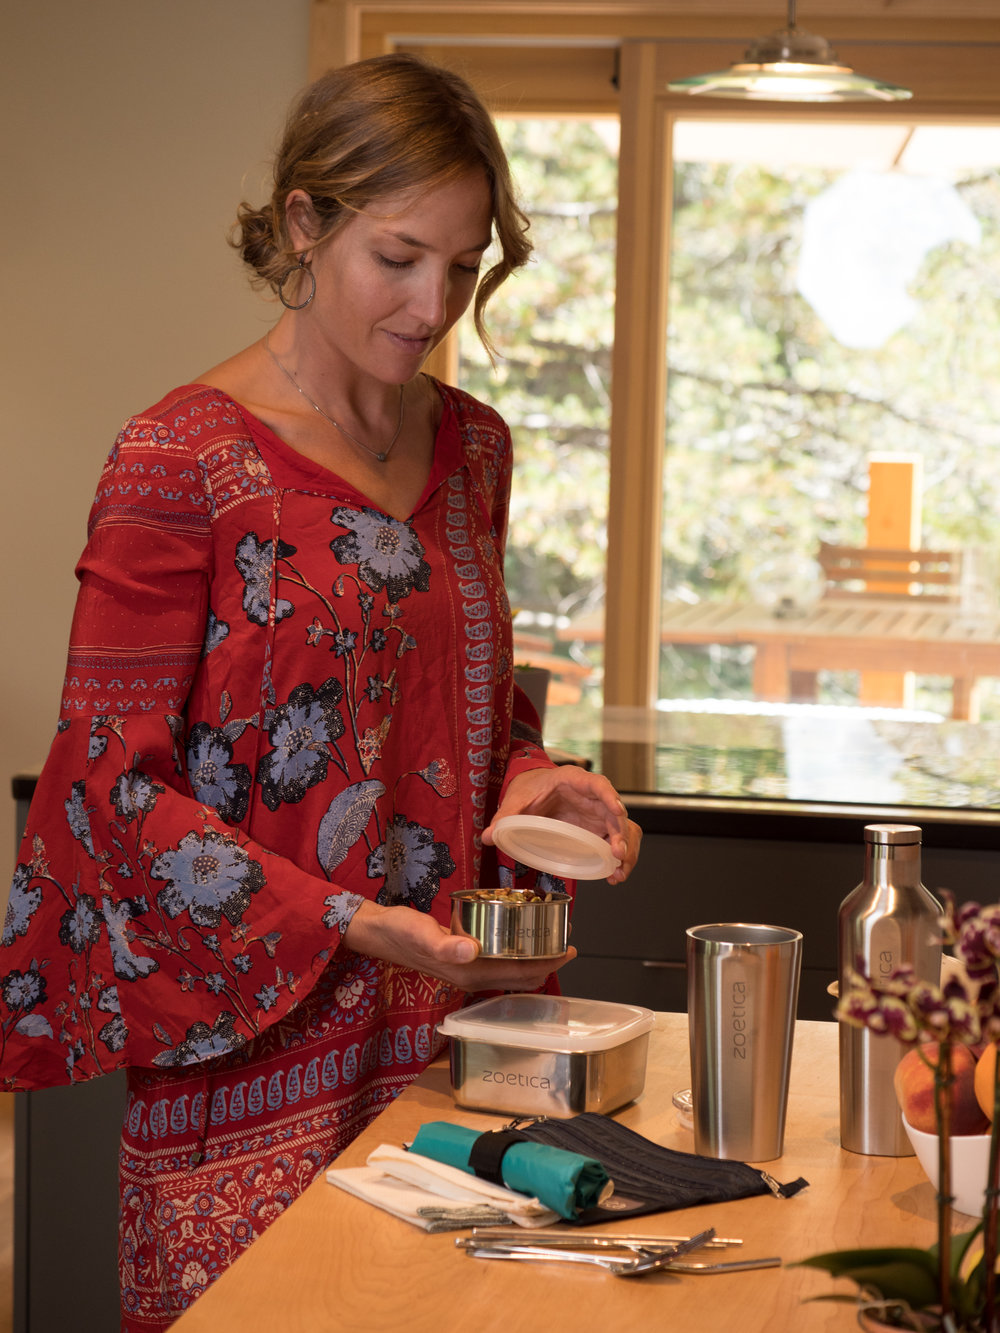 Preparation matters! Elizabeth, a busy single working mom, gathering and organizing her Nomad Kit for a work trip.